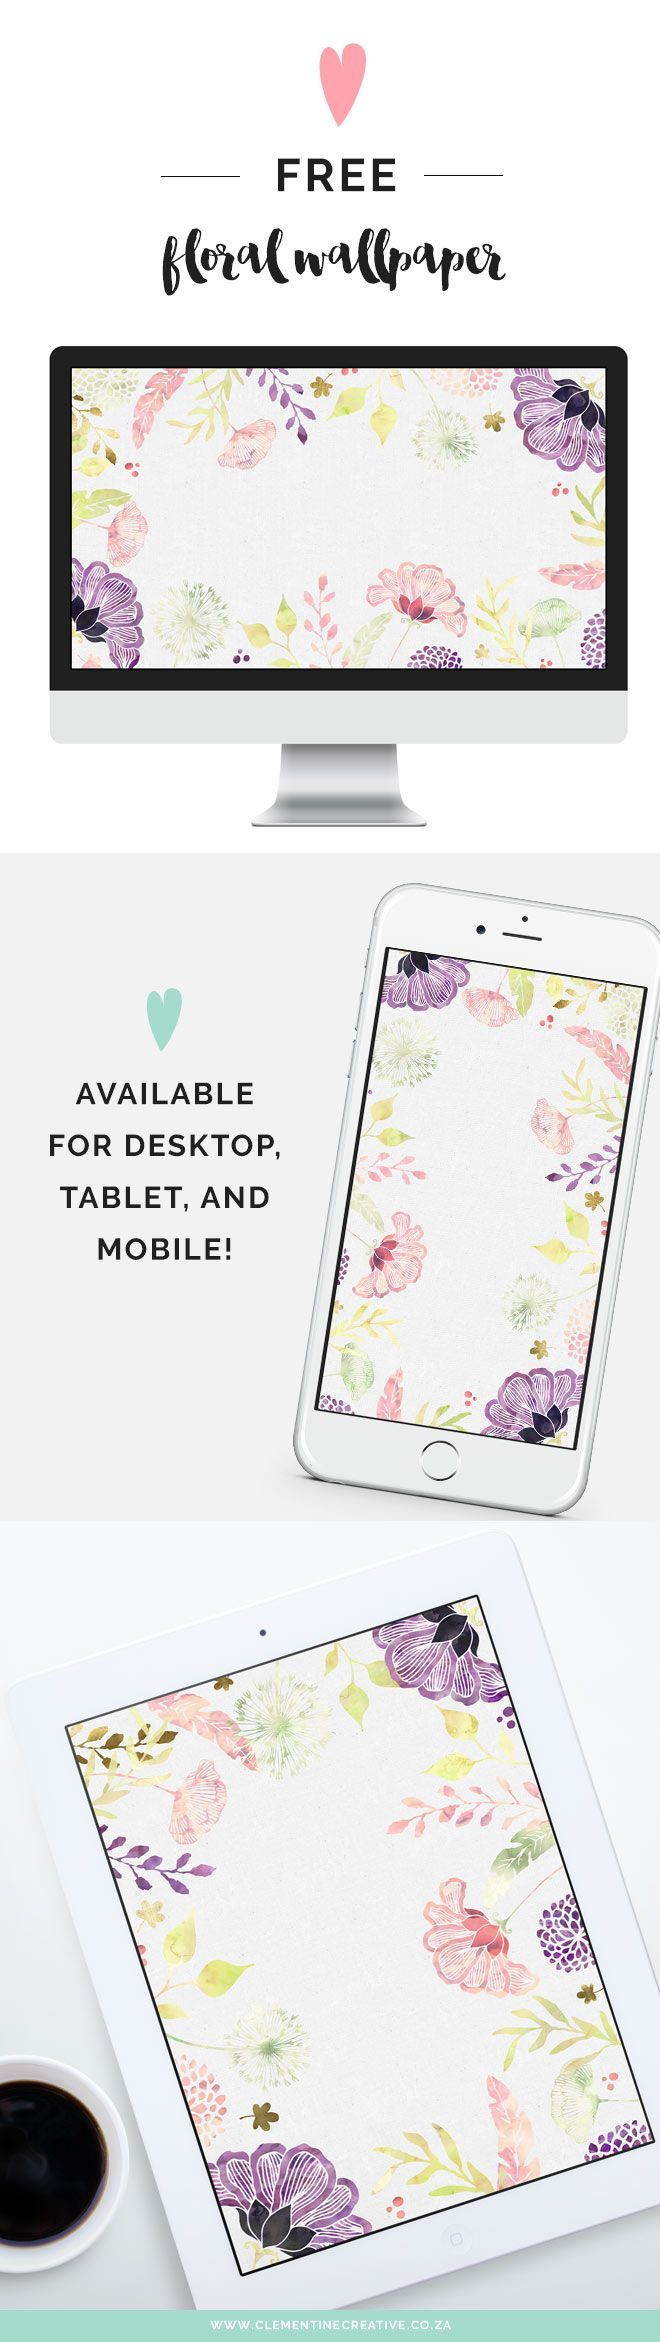 Elegant Free Floral Desktop Wallpaper   I Choose Happiness | Download This  Beautiful Wallpaper From Clementine Creative